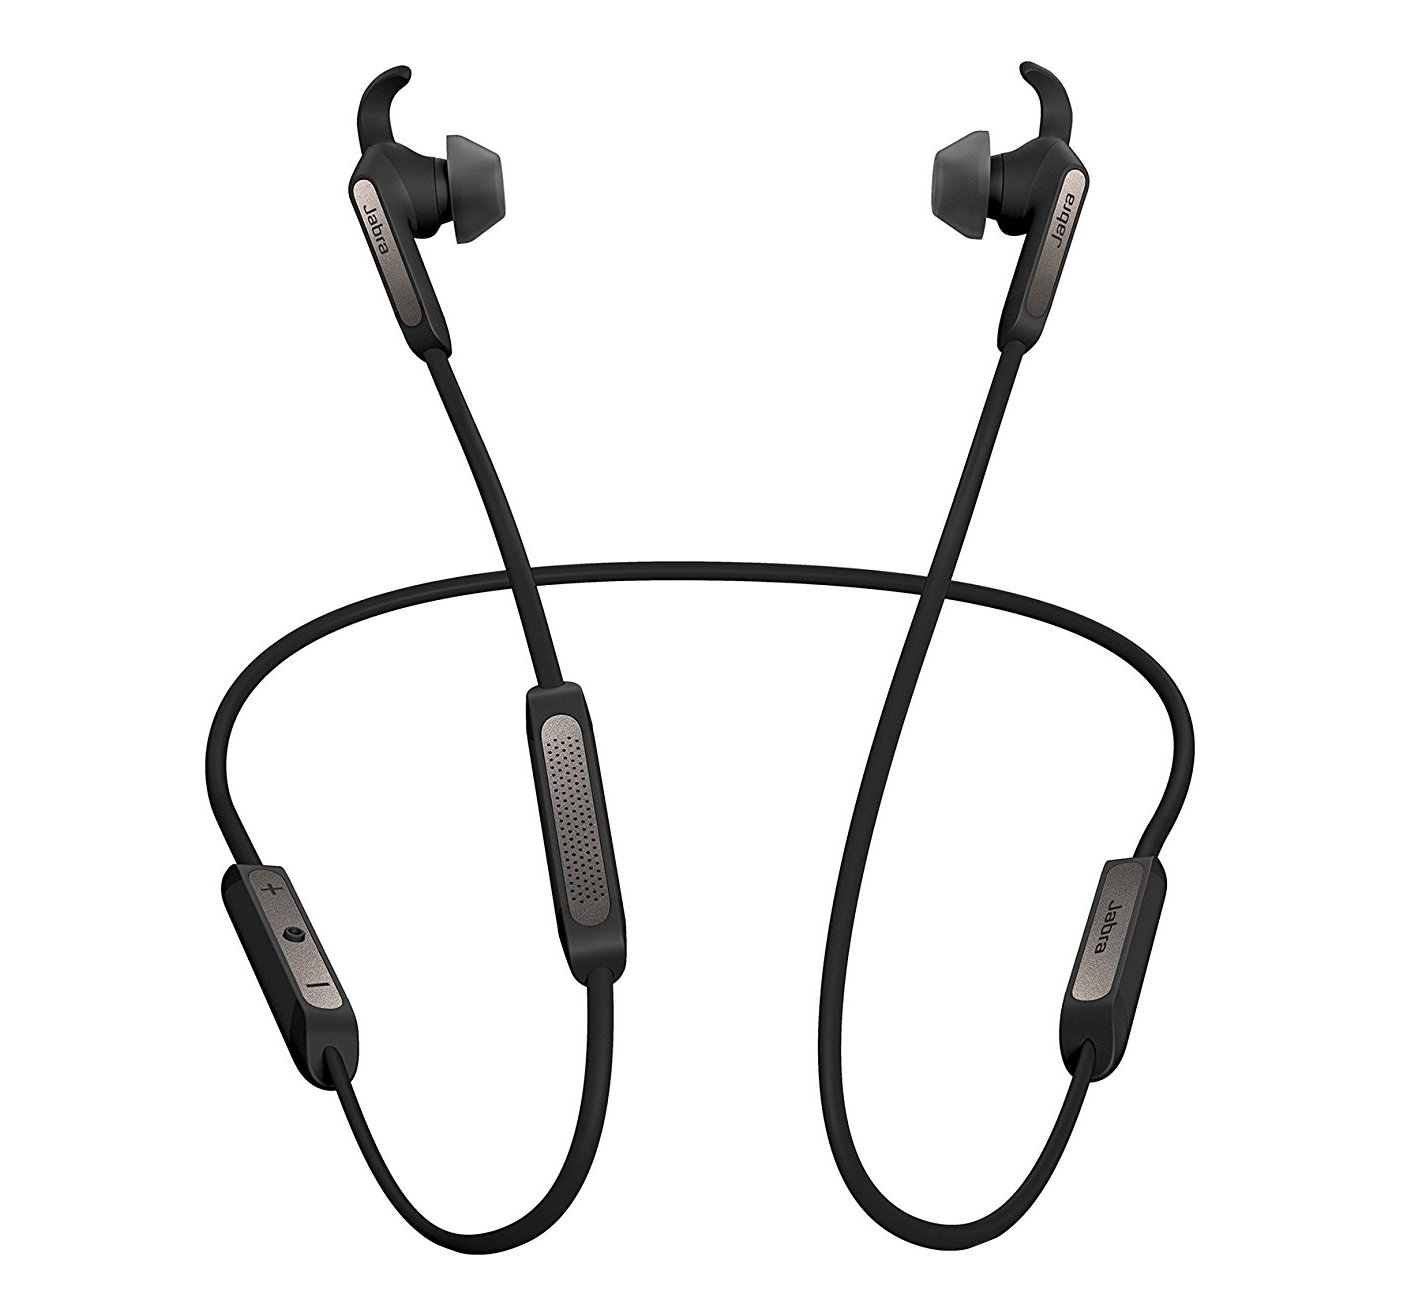 These Jabra Elite wireless  Bluetooth headphones  are normally about $100 but will be on sale for $70 throughout Prime Day. For some, the appeal is probably that they're Alexa-enabled,but for me, it's more about the fact that I'm constantly yanking my earbuds out of my phone during my morning run and these would make that problem go away.